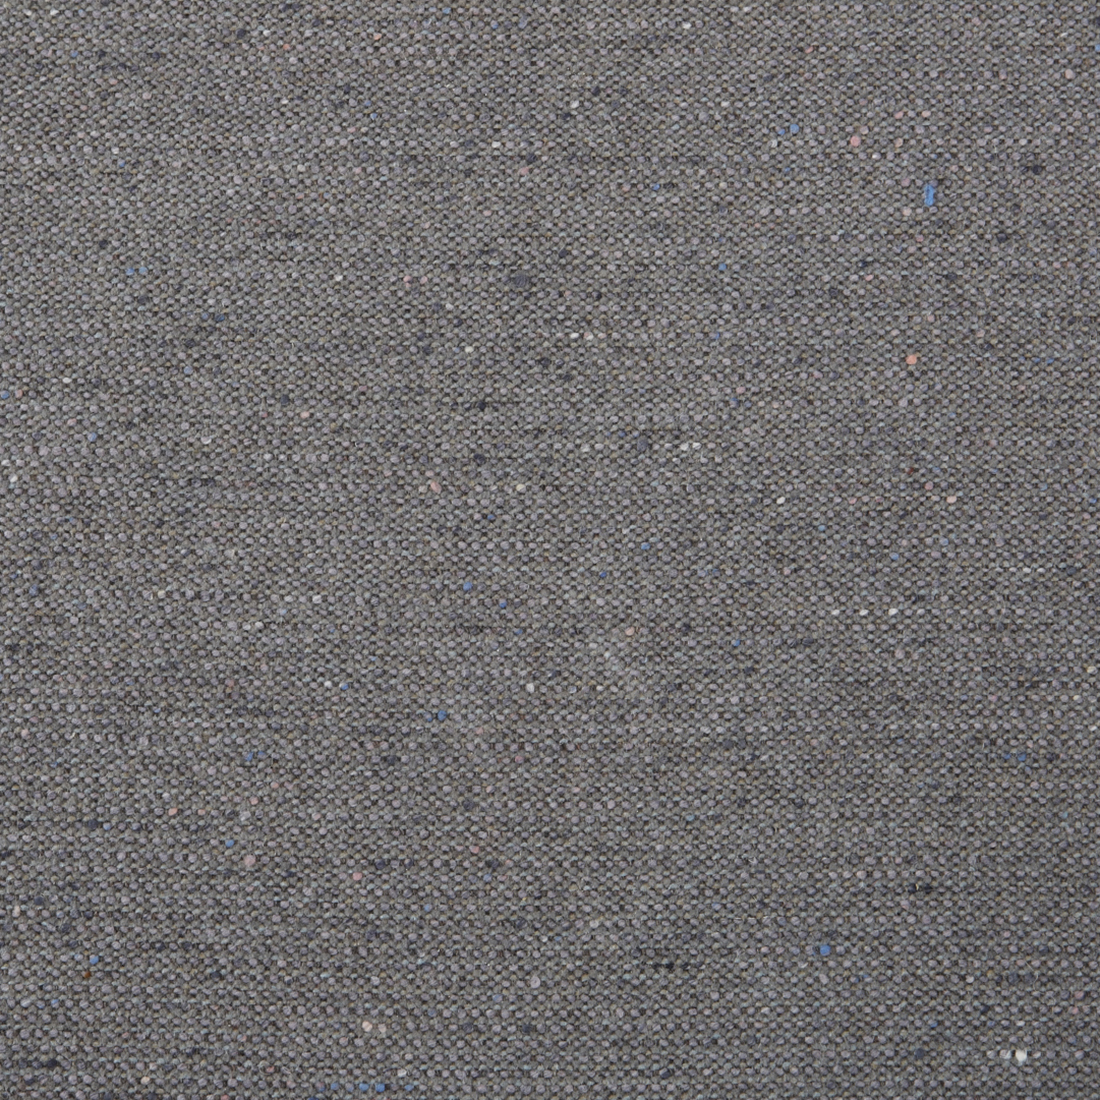 Charcoal Wool Grey Solid Wool Upholstery Fabric